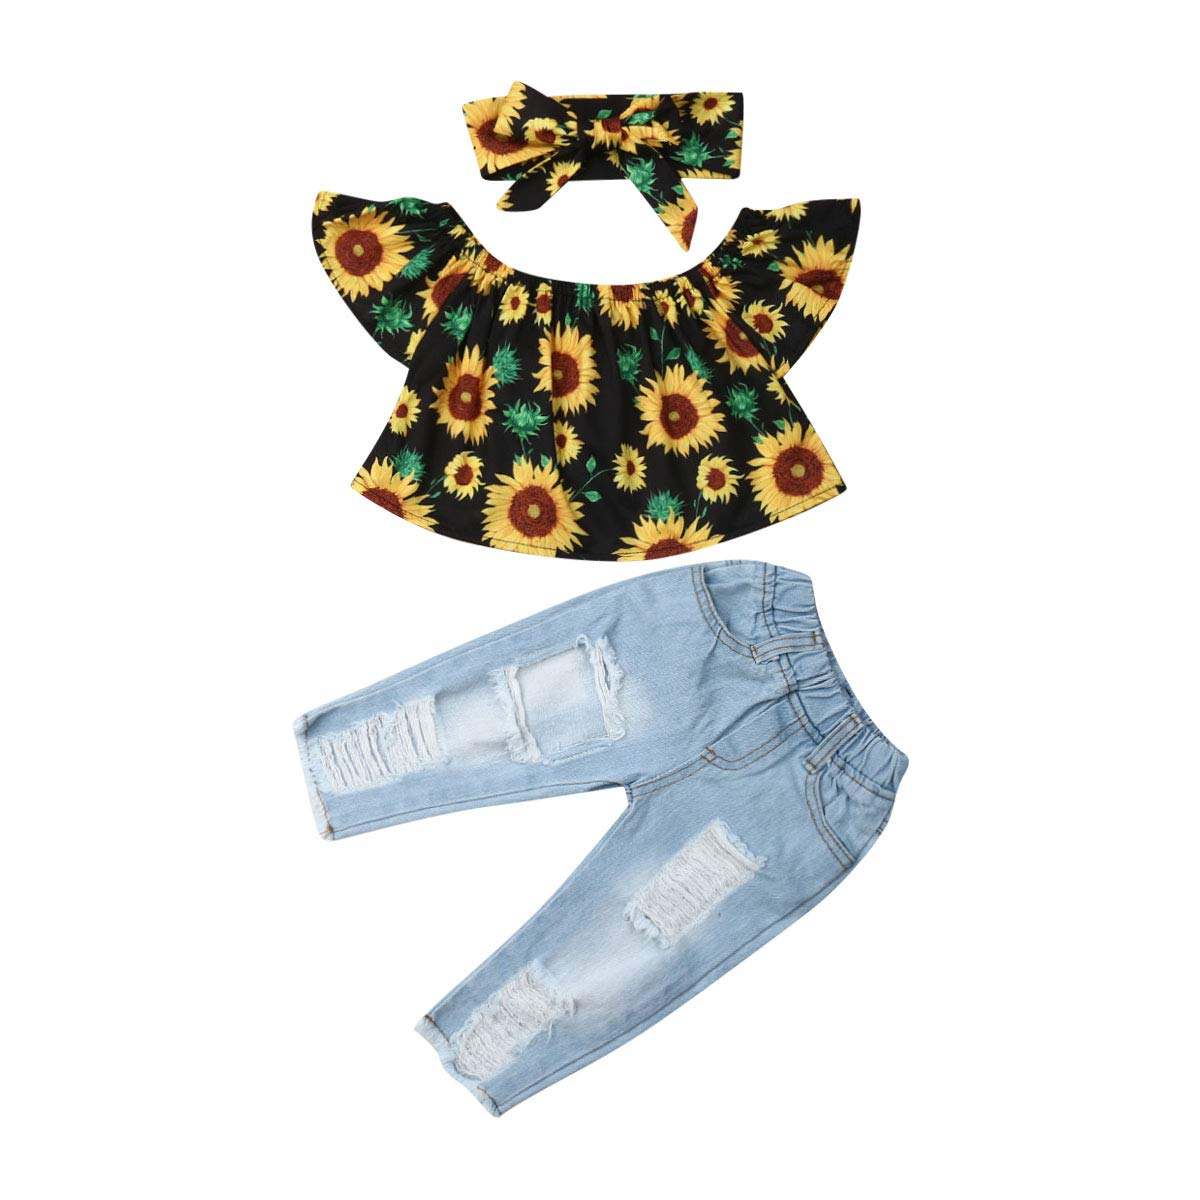 Baby Girls Ripped Jeans Outfit Long Sleeve Floral Ruffle T Shirt Tops Denim Pants Set Fall Clothing Set